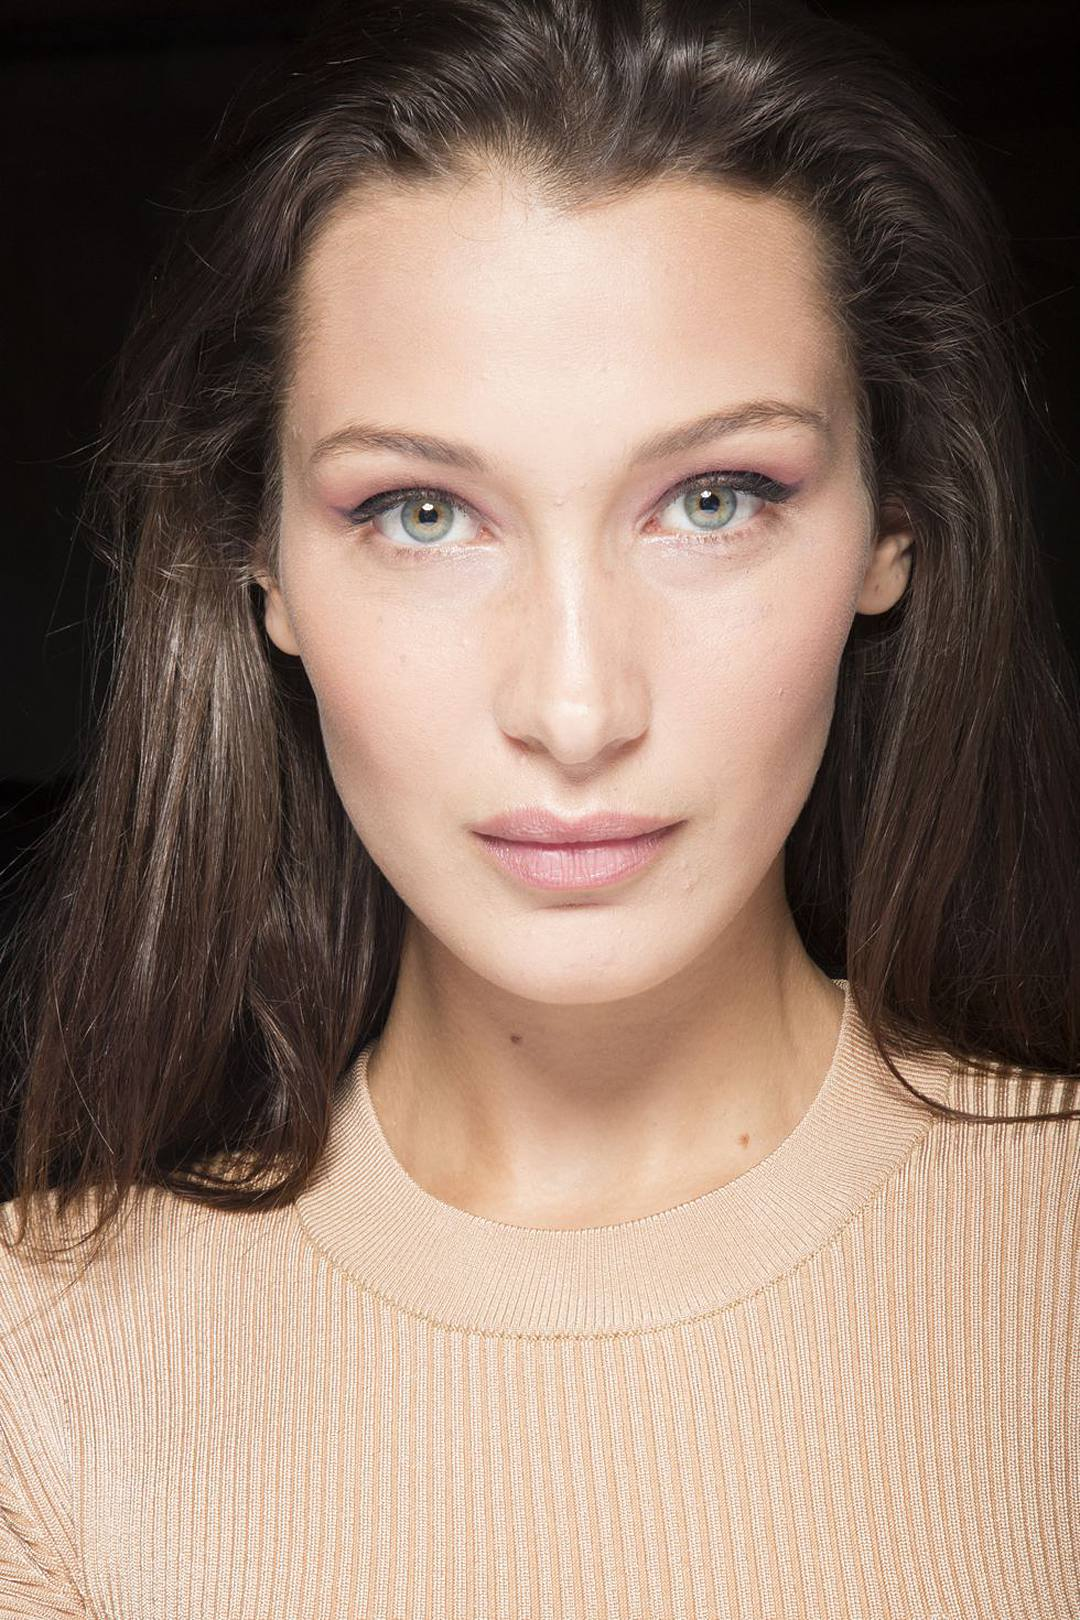 Spring Beauty, Devine Bride, Beauty Tips, MAC, Organic Beauty, Glowing Skin, Cruelty Free Beauty, Green People, 2019 Catwalk Looks, Huda Beauty, Bare Skin, Exfoliators